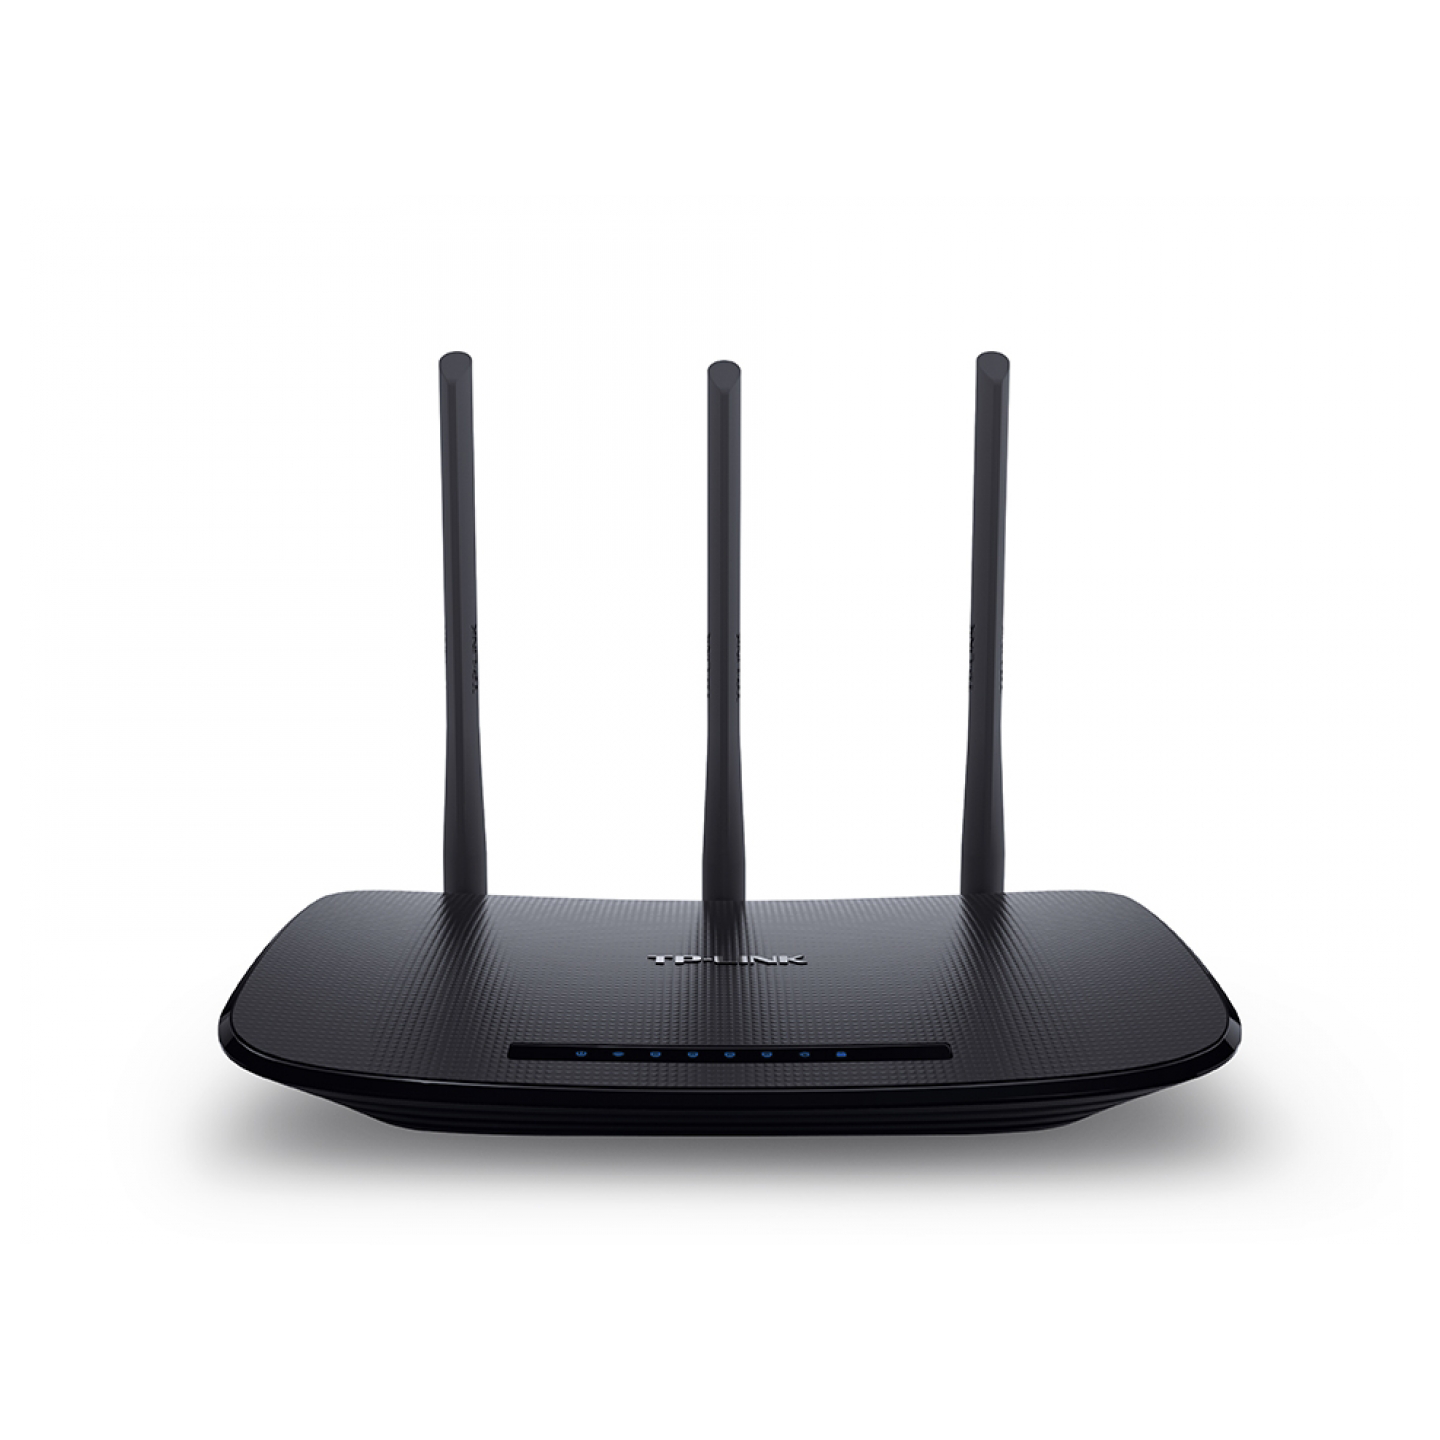 TP-LINK WIRELESS ROUTER WR940N 450MBPS